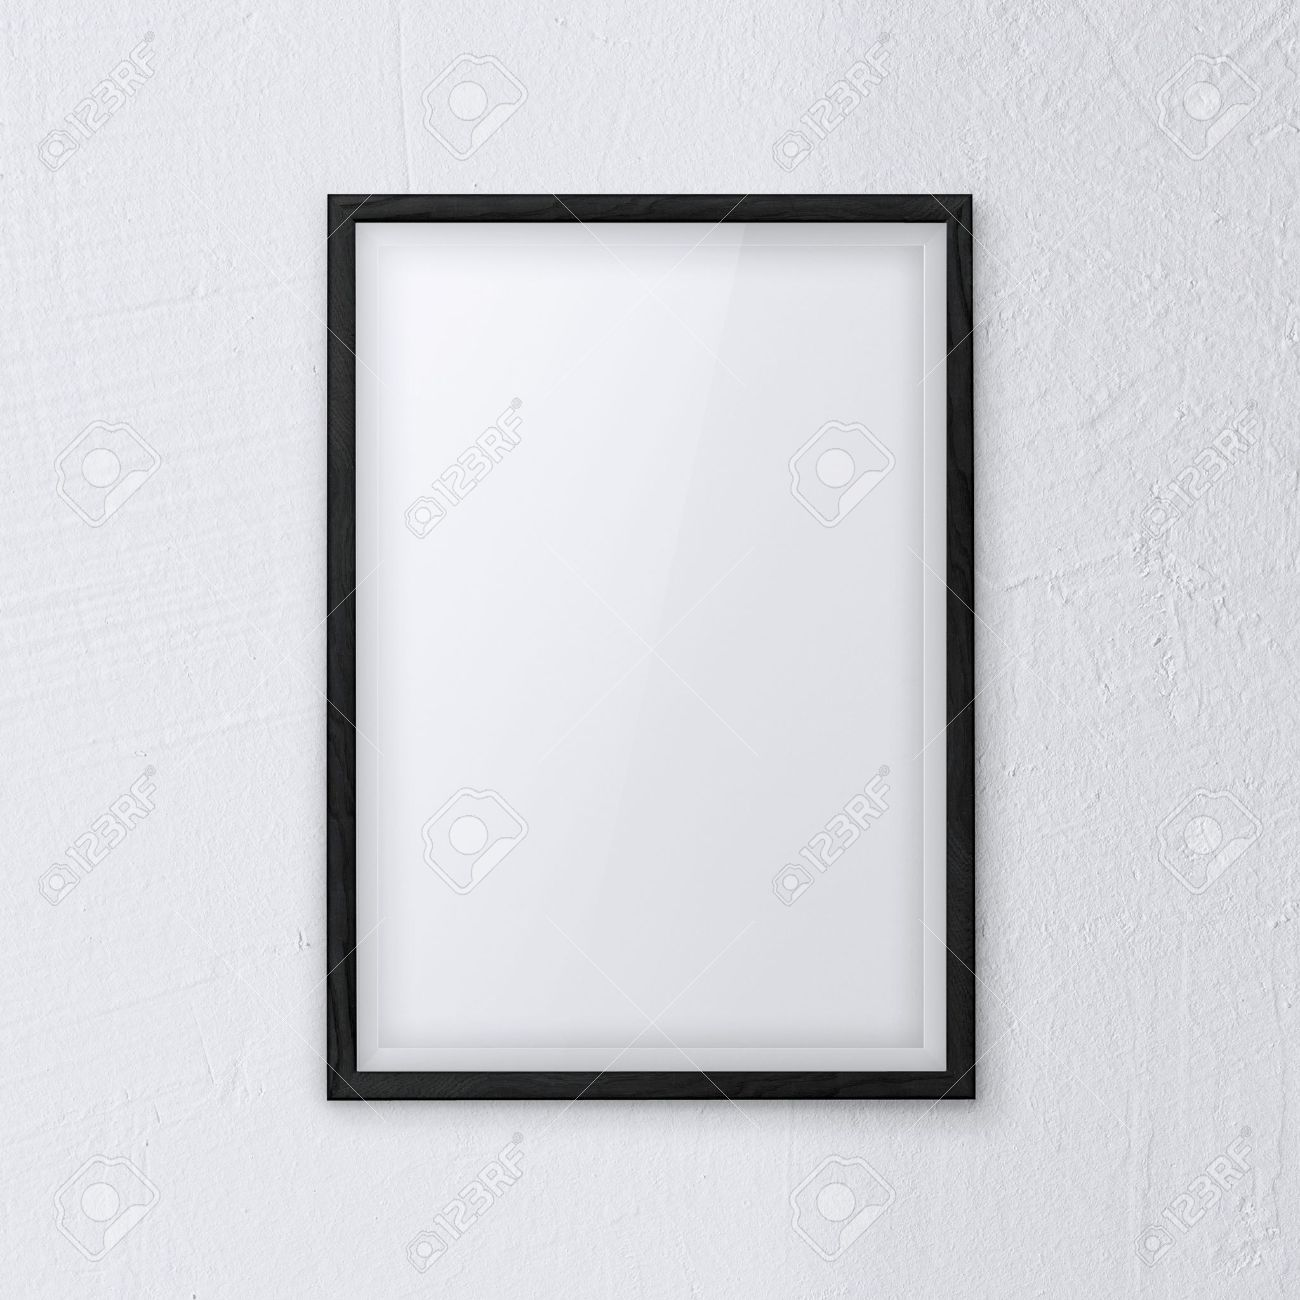 stock photo framework picture with black frame on white wall